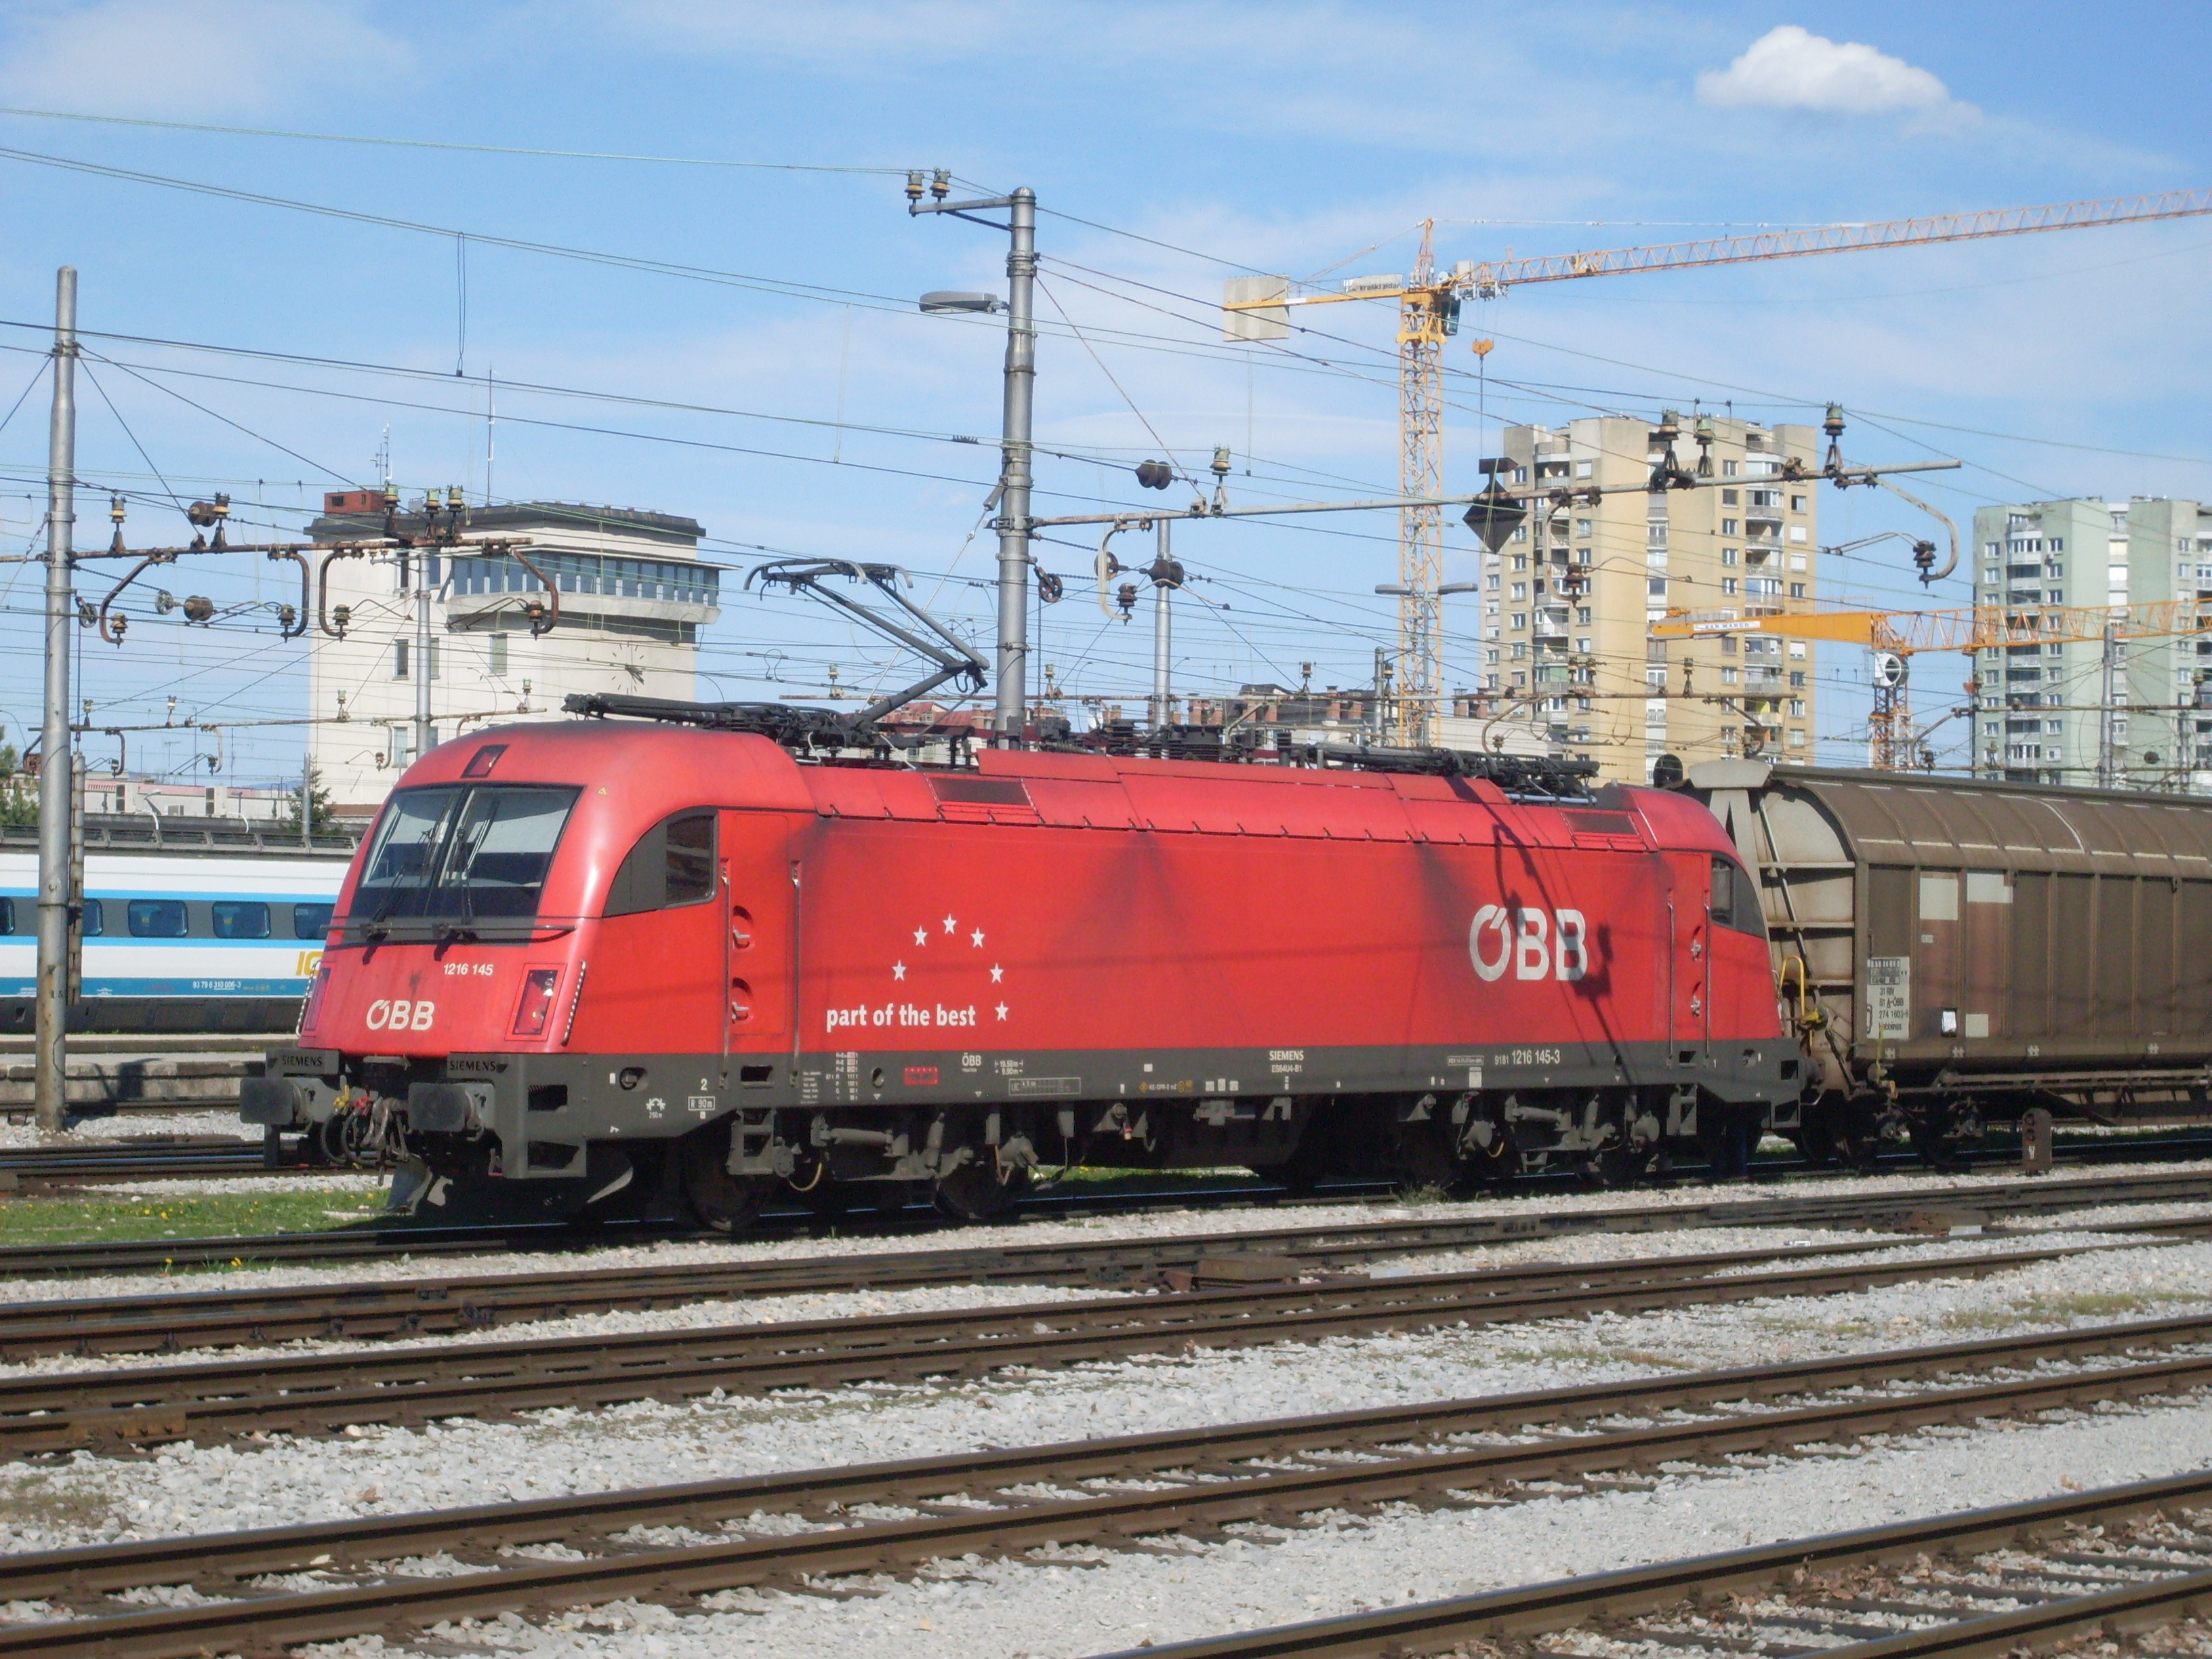 File:OeBB 1216 145 in Ljubljana.jpg